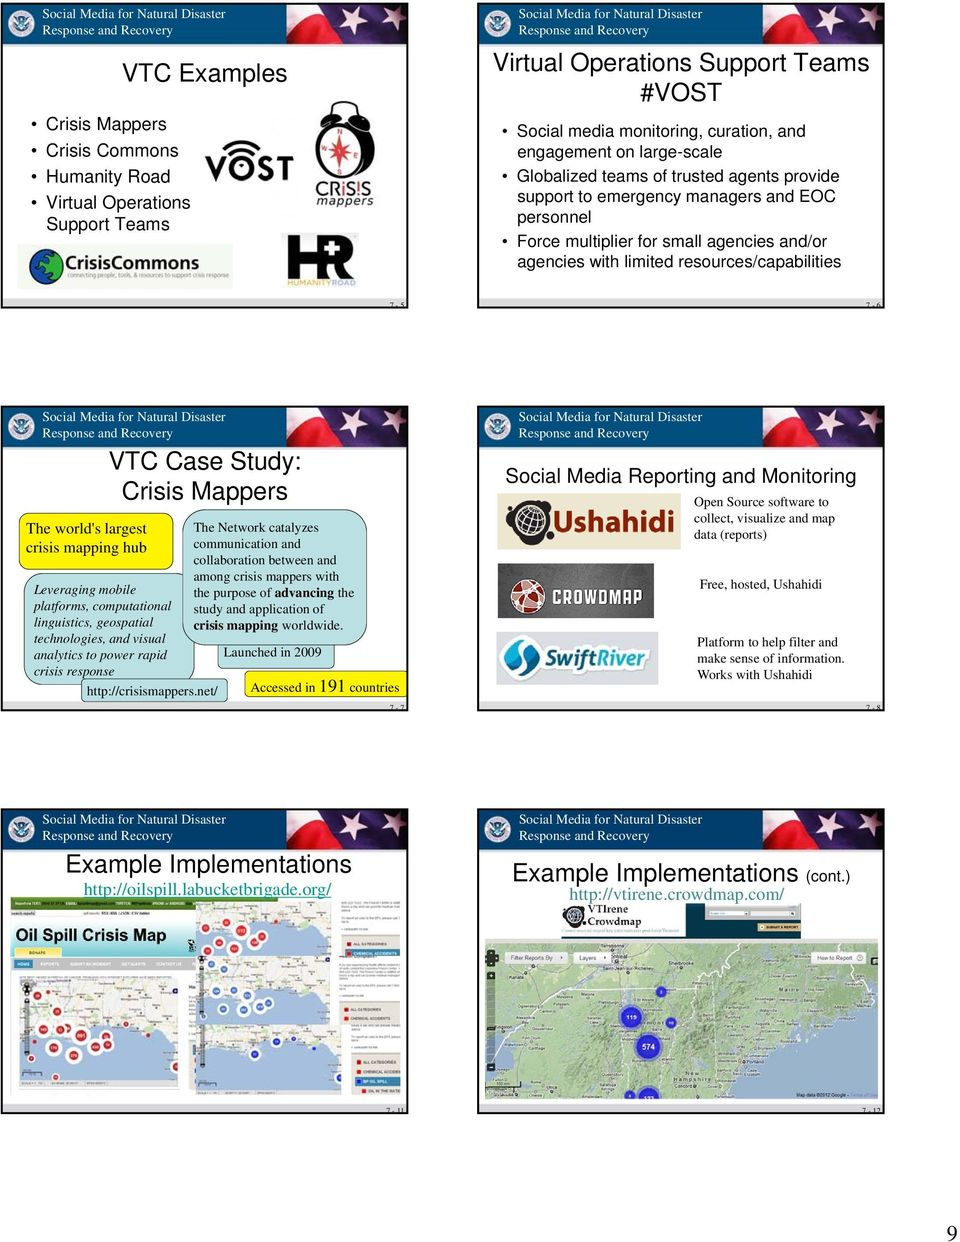 Study: Crisis Mappers The world's largest crisis mapping hub Leveraging mobile platforms, computational linguistics, geospatial technologies, and visual analytics to power rapid crisis response